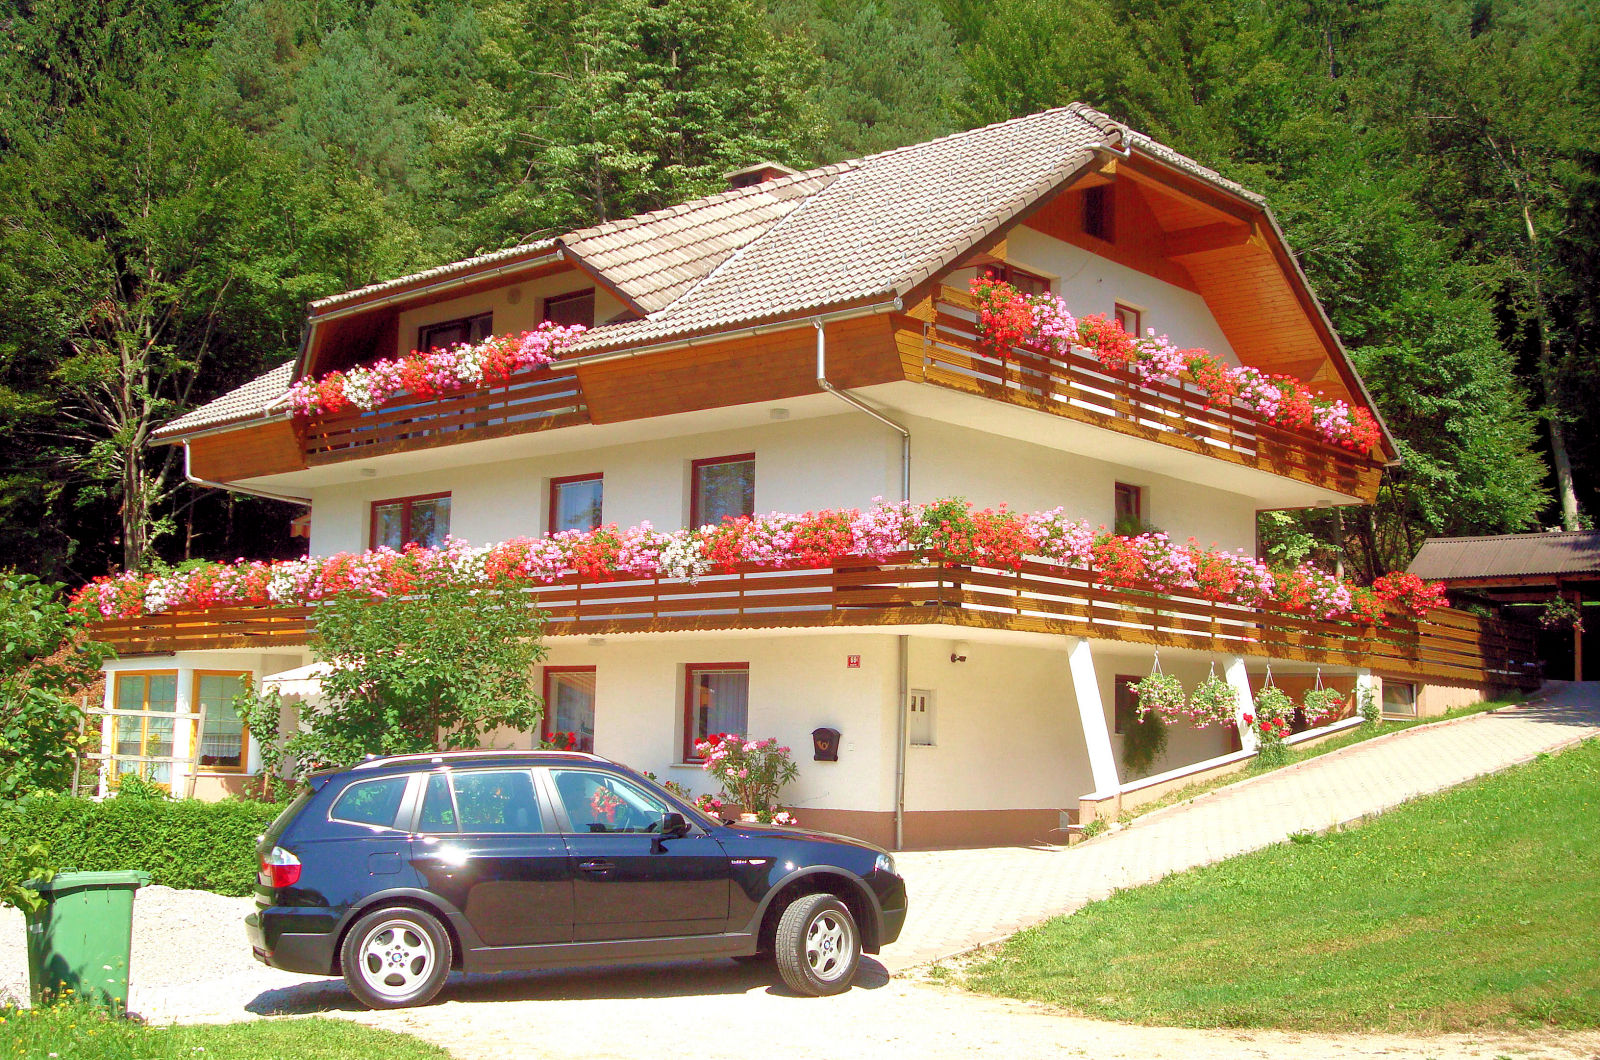 Exterior of the Fine Stay Apartment Superior located in the Lake Bled area in Slovenia